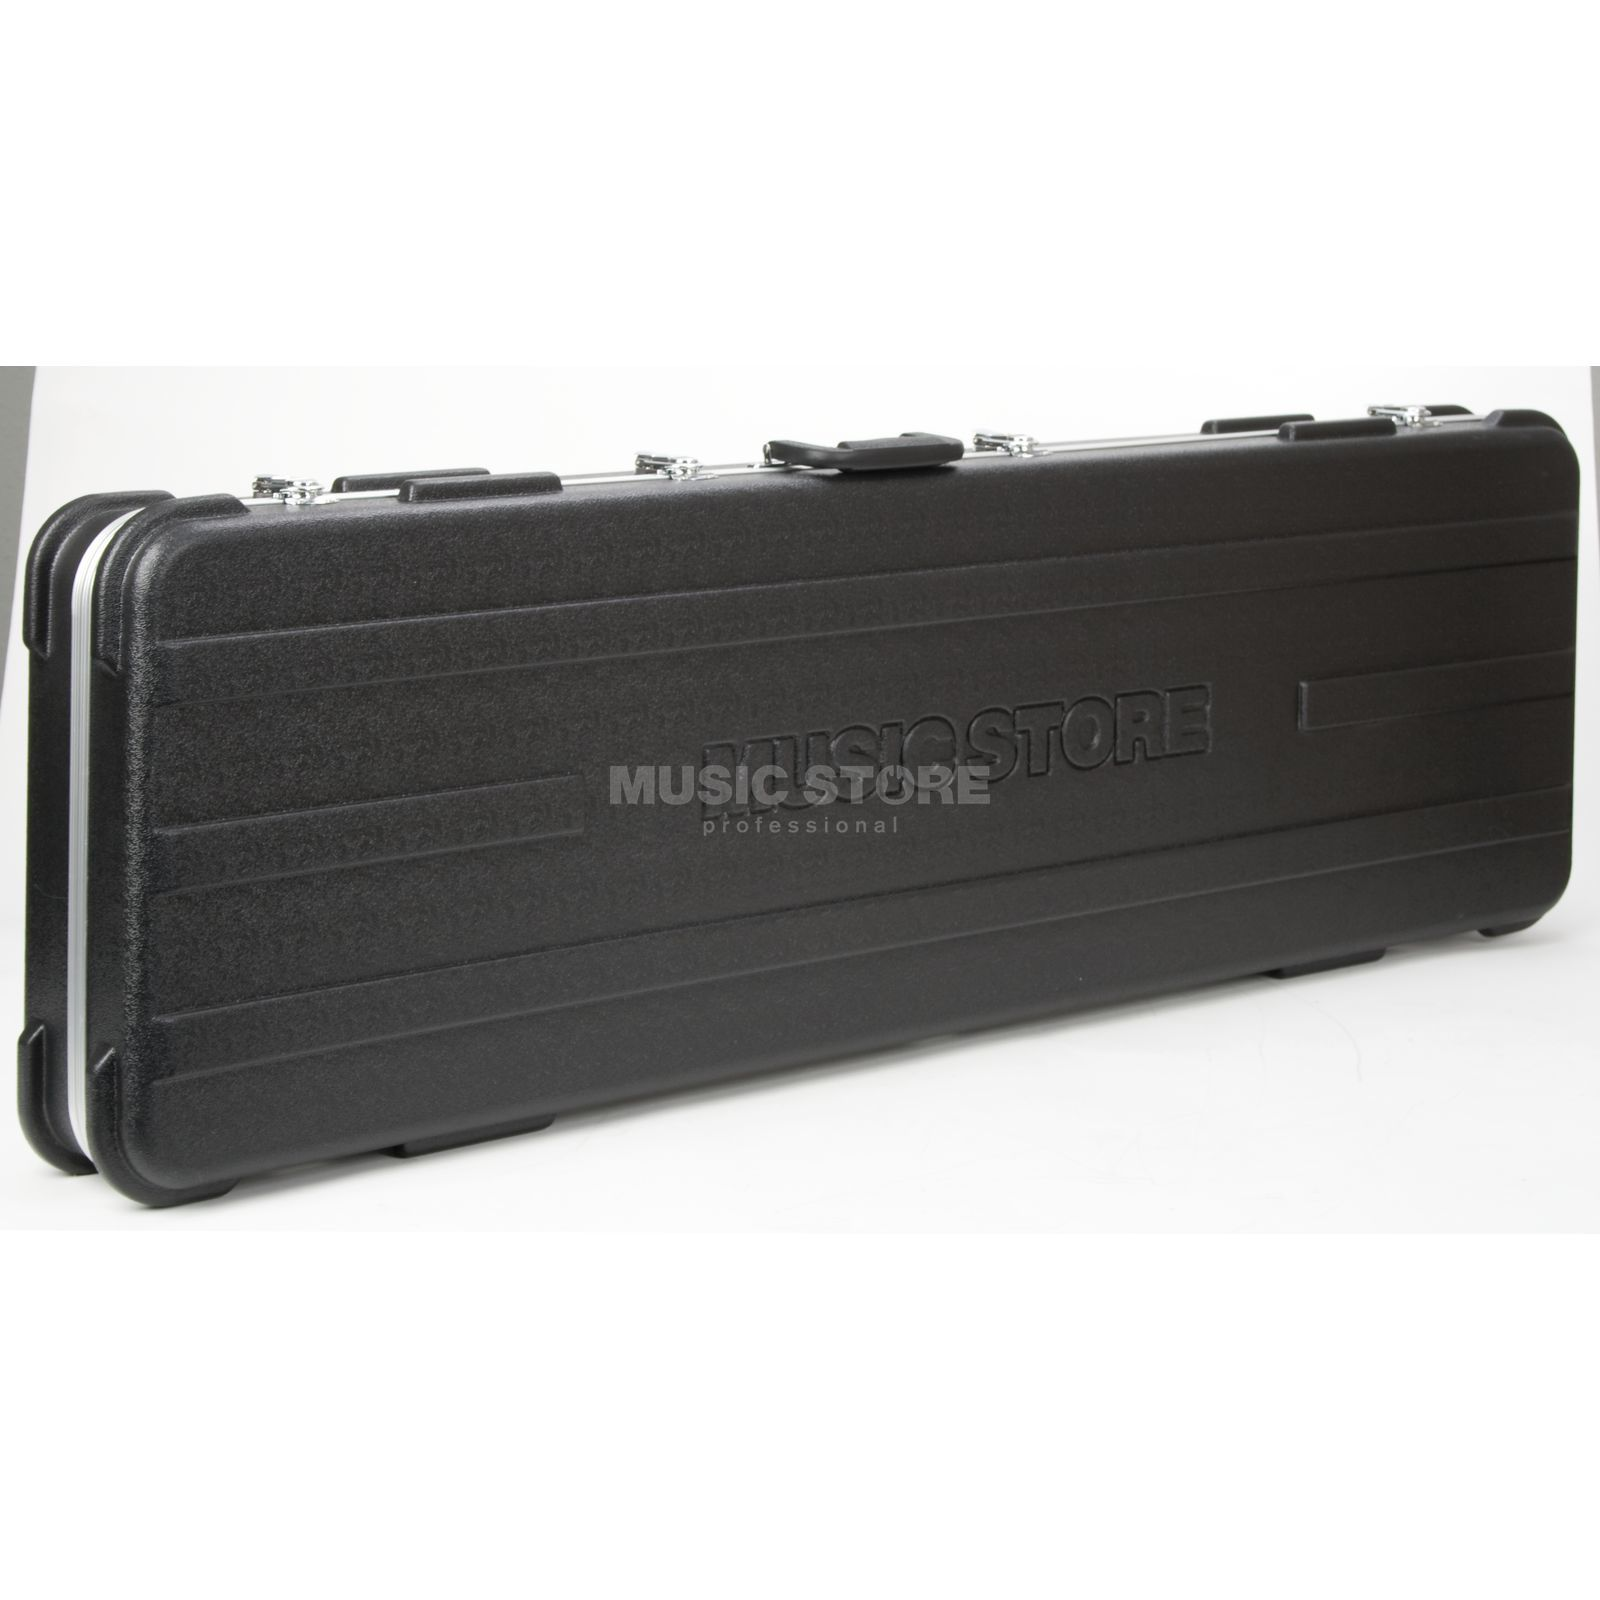 MUSIC STORE E-Basscase High-End Kunstoff-Hartschalen-Rechteck Product Image